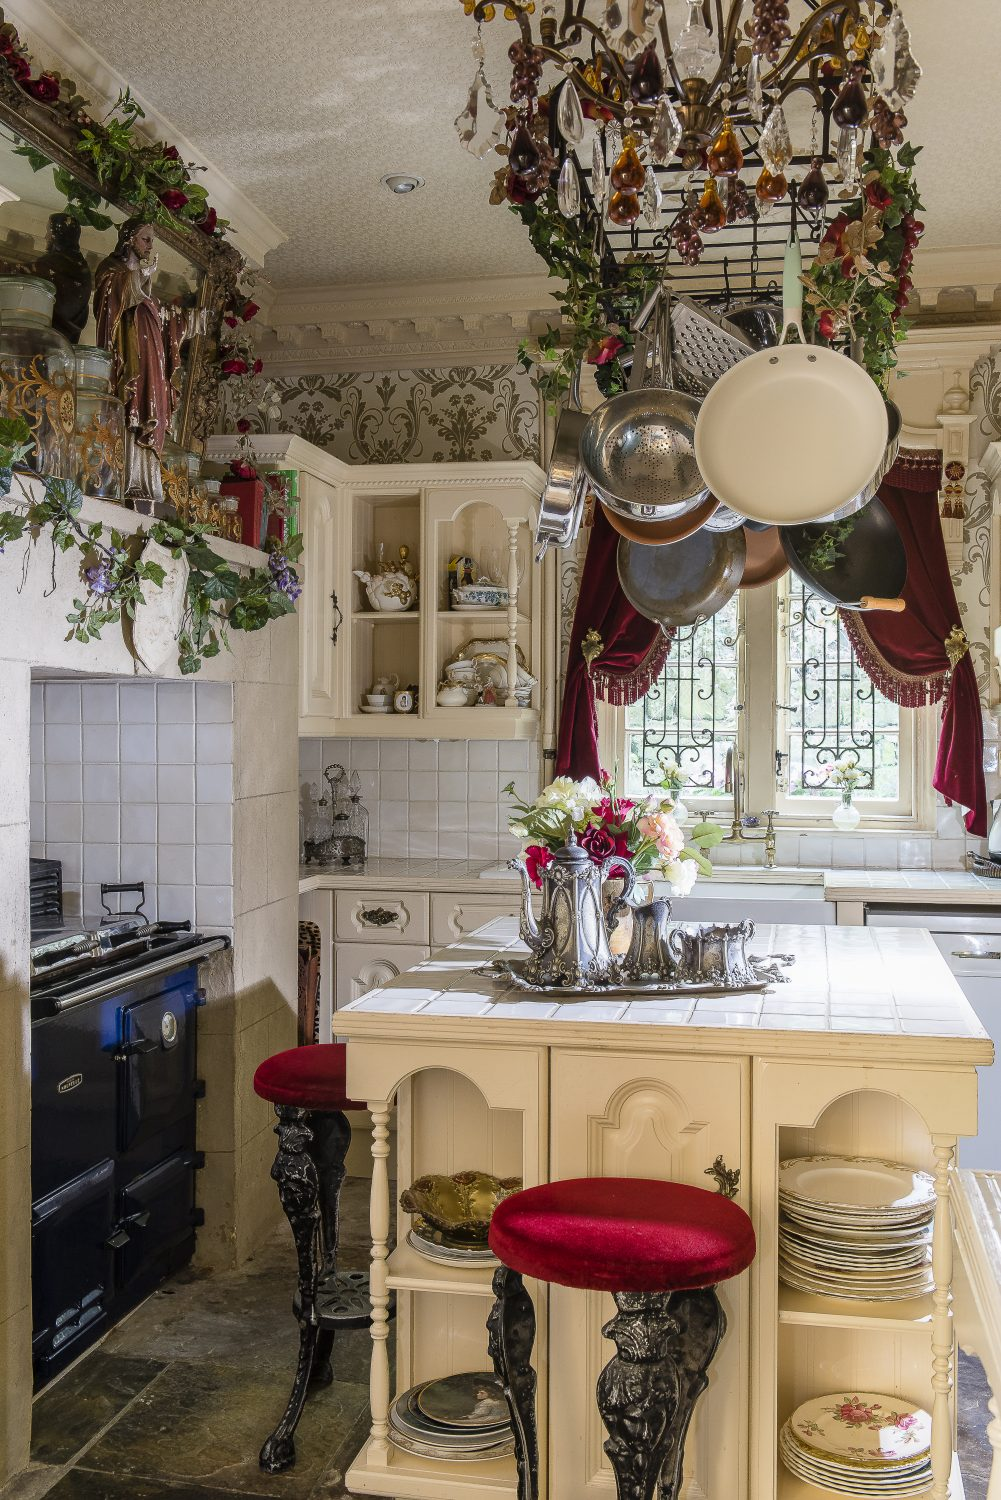 The bespoke kitchen has a central island where Kim displays her charity shop and boot fair mix and match plates